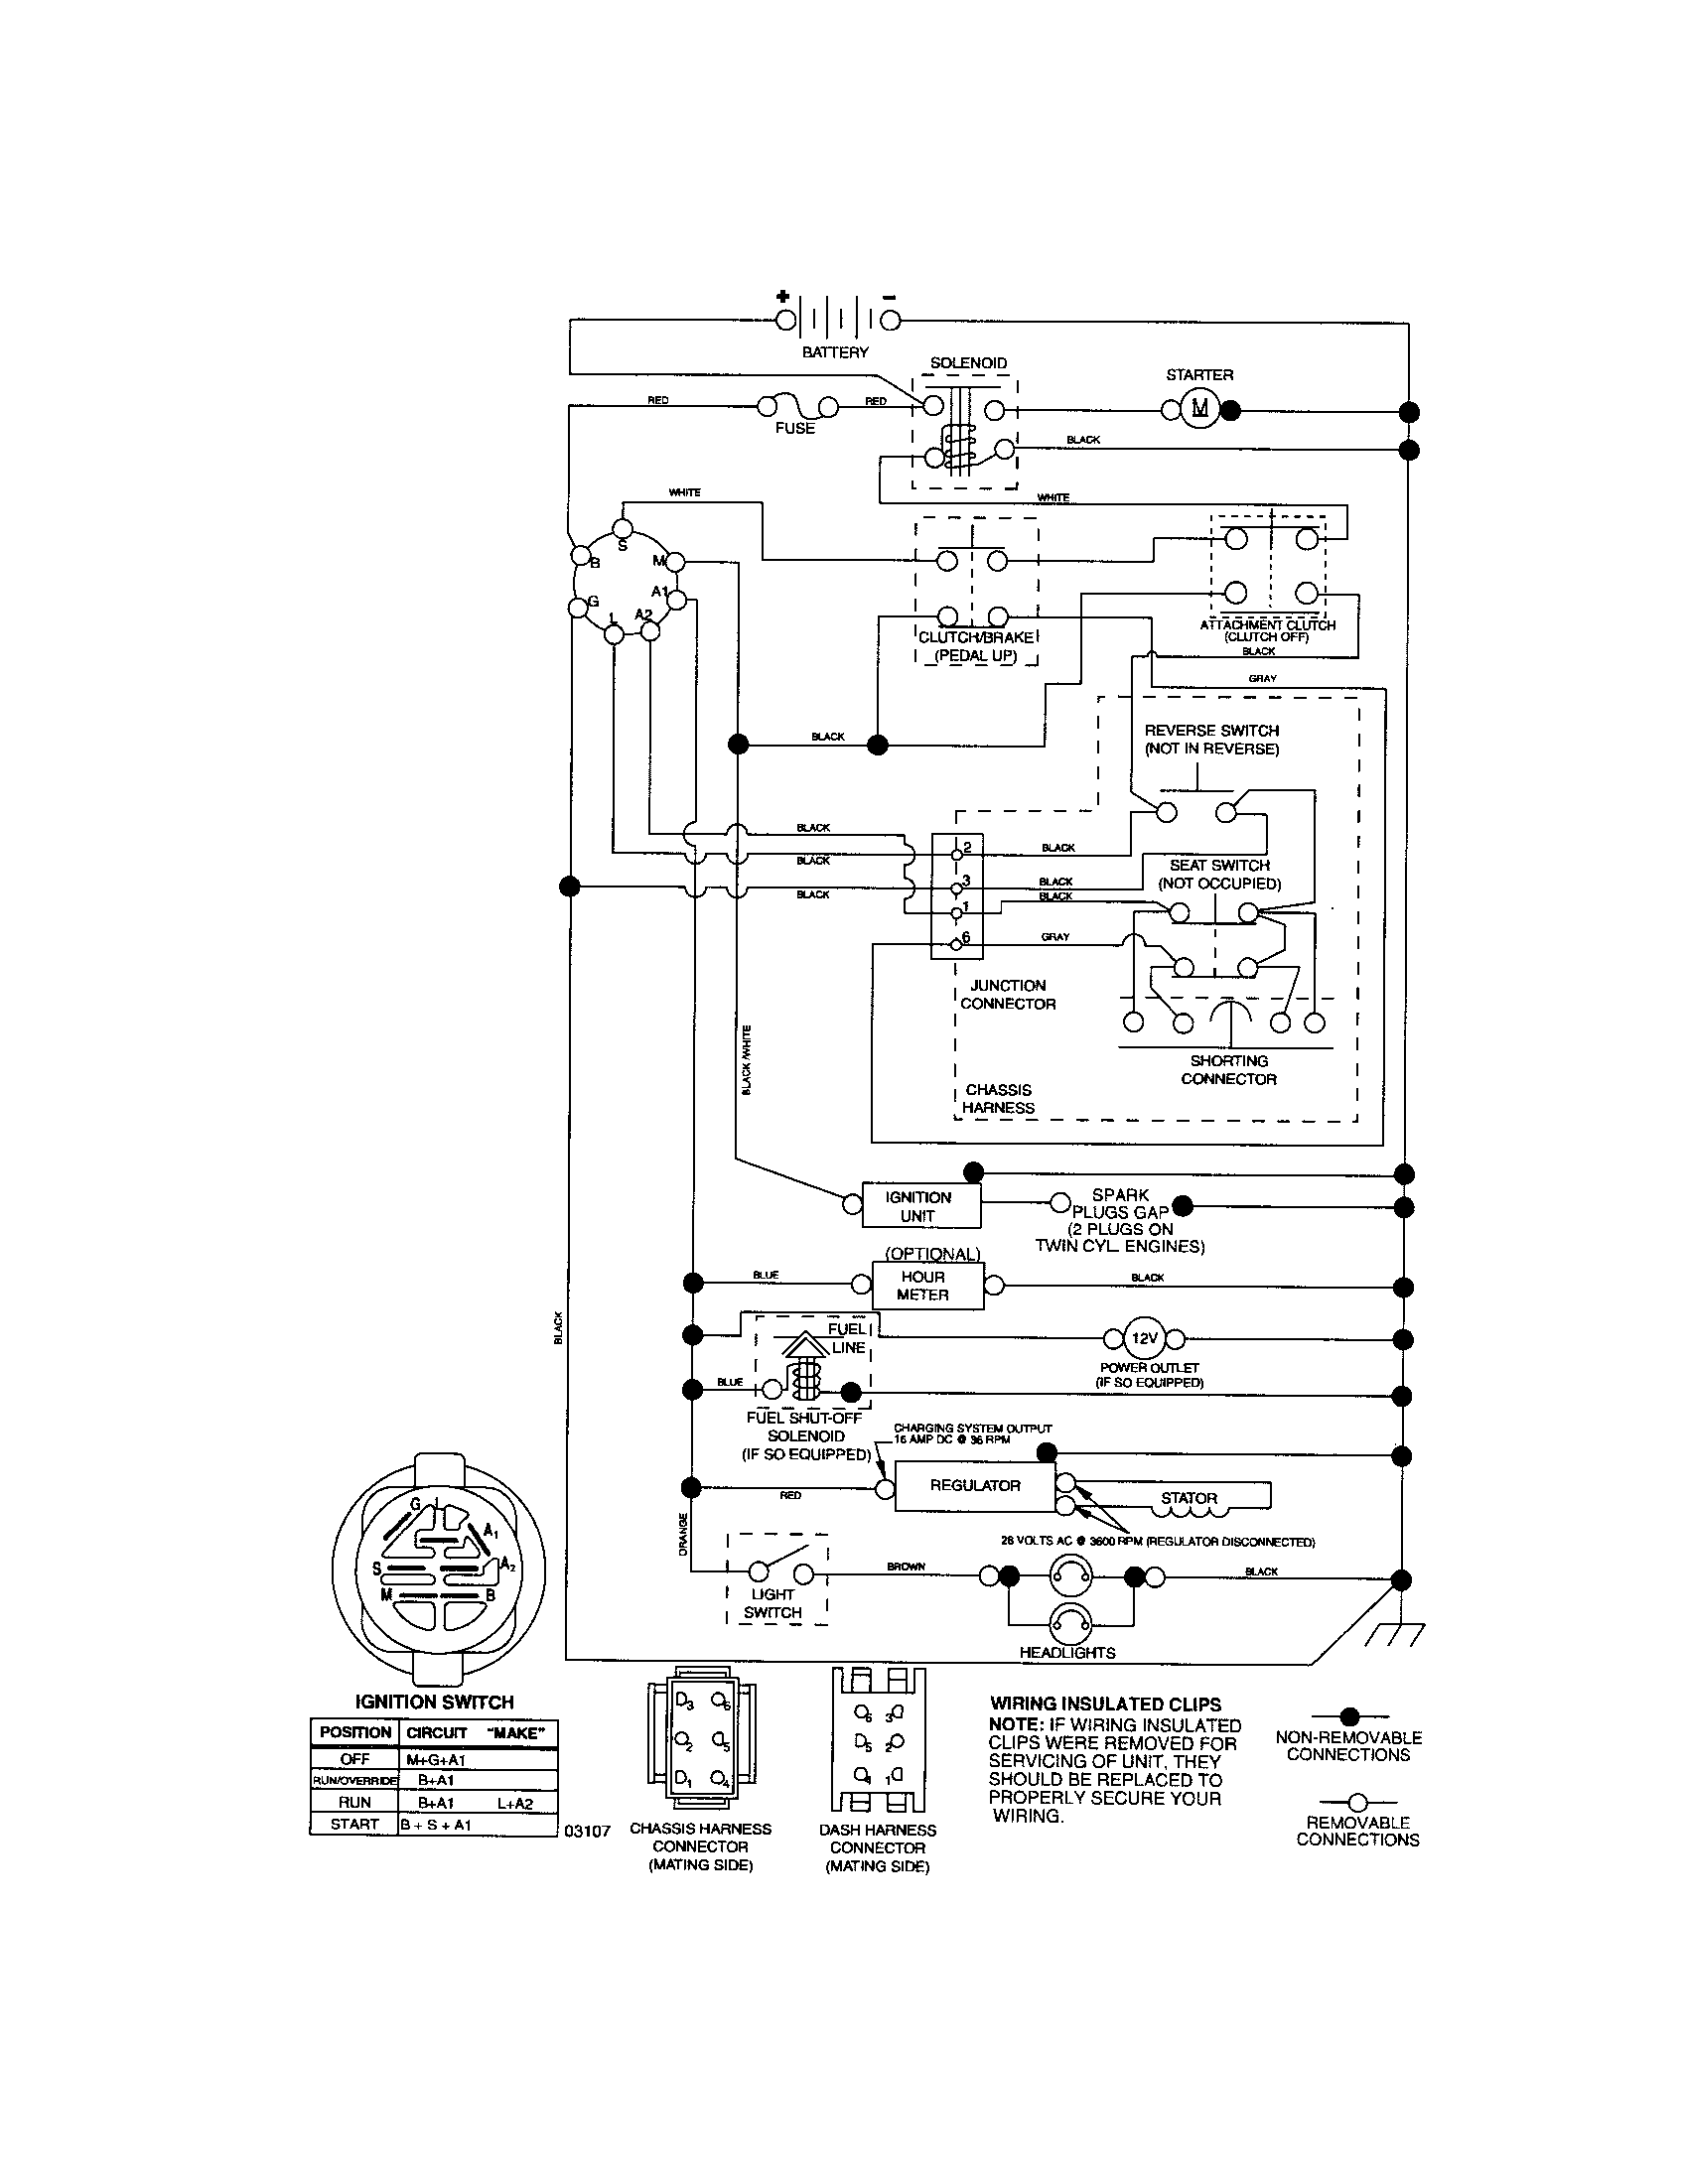 Wright Electric Chain Hoist Wiring Diagram For You Dayton Images Gallery Craftsman Mower Detailed Schematics Rh Yogajourneymd Com